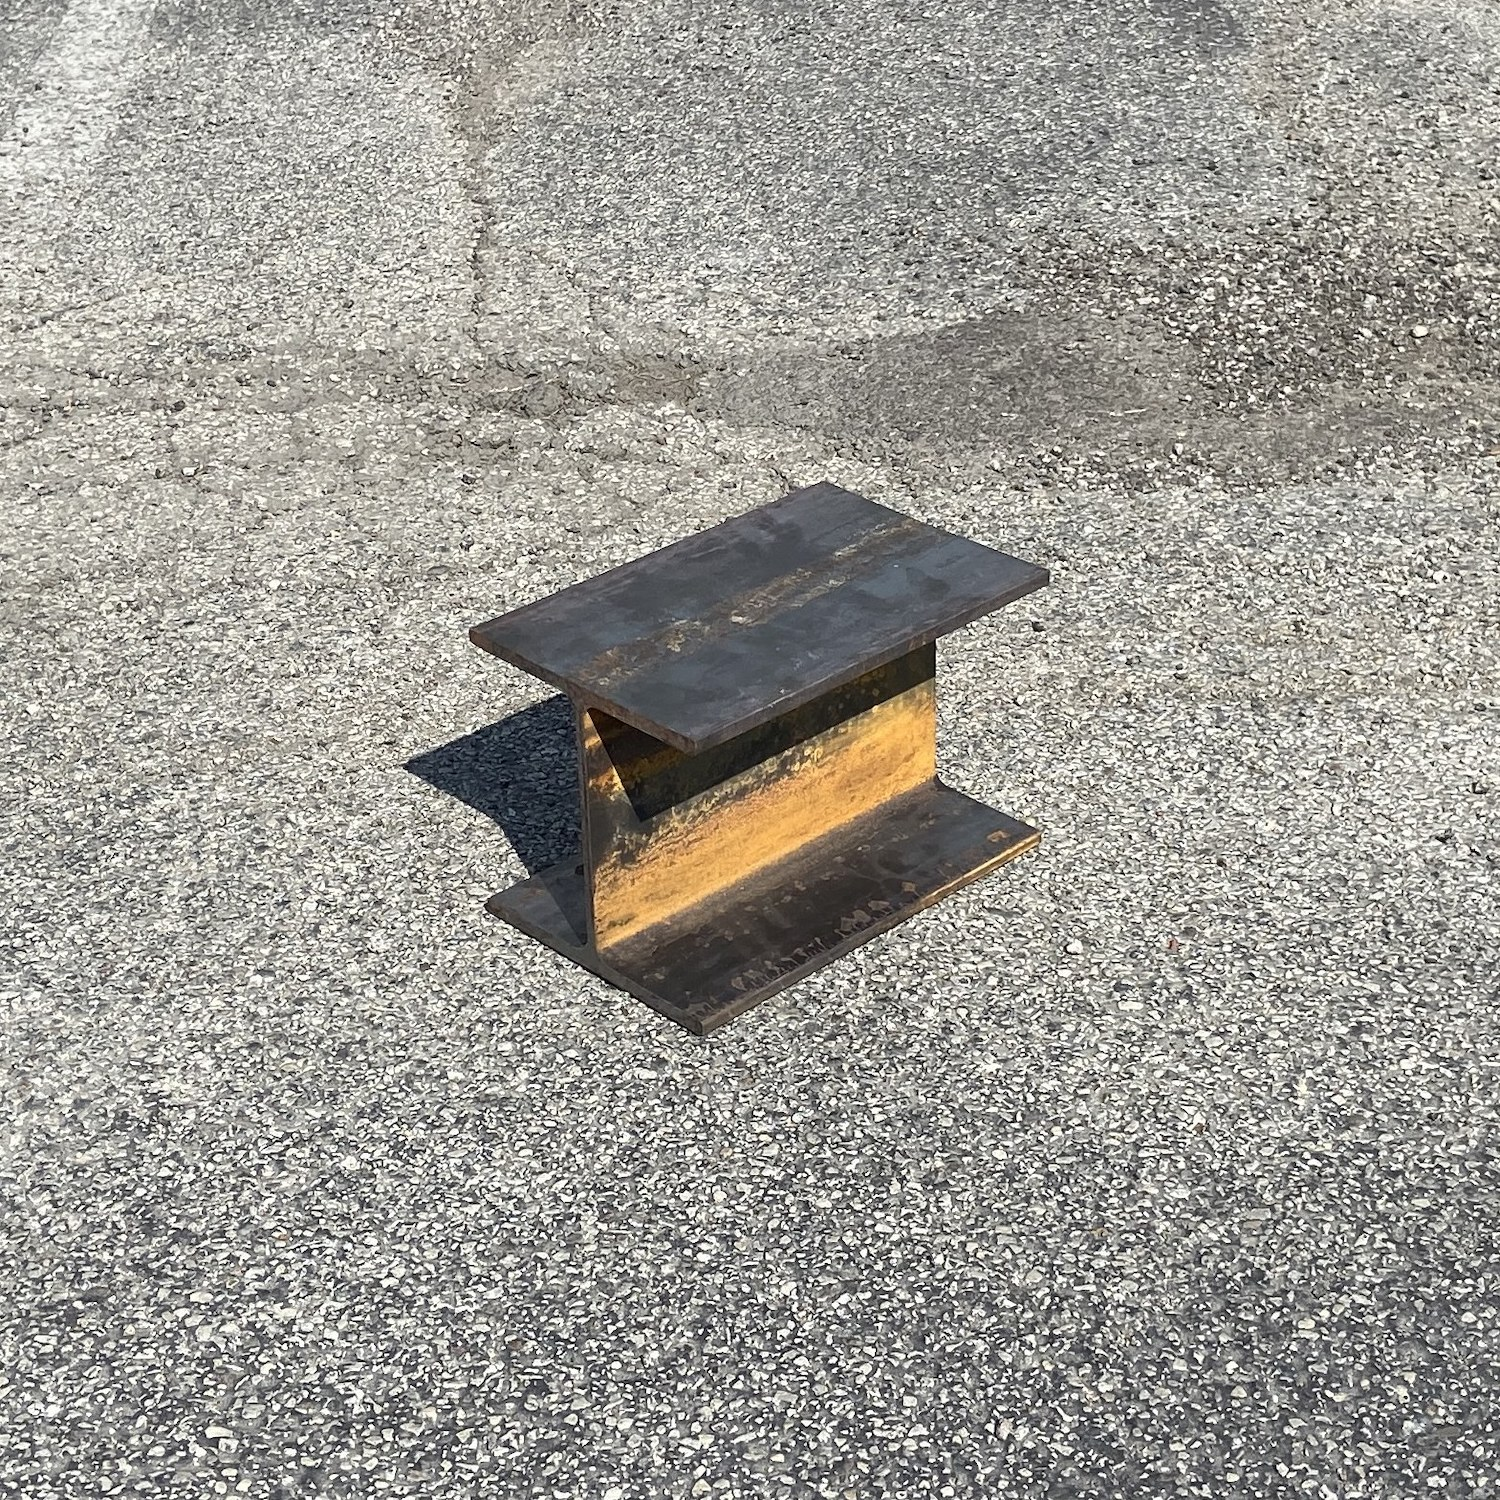 An anvil made out of steel I-beam, photographed in a parking lot.